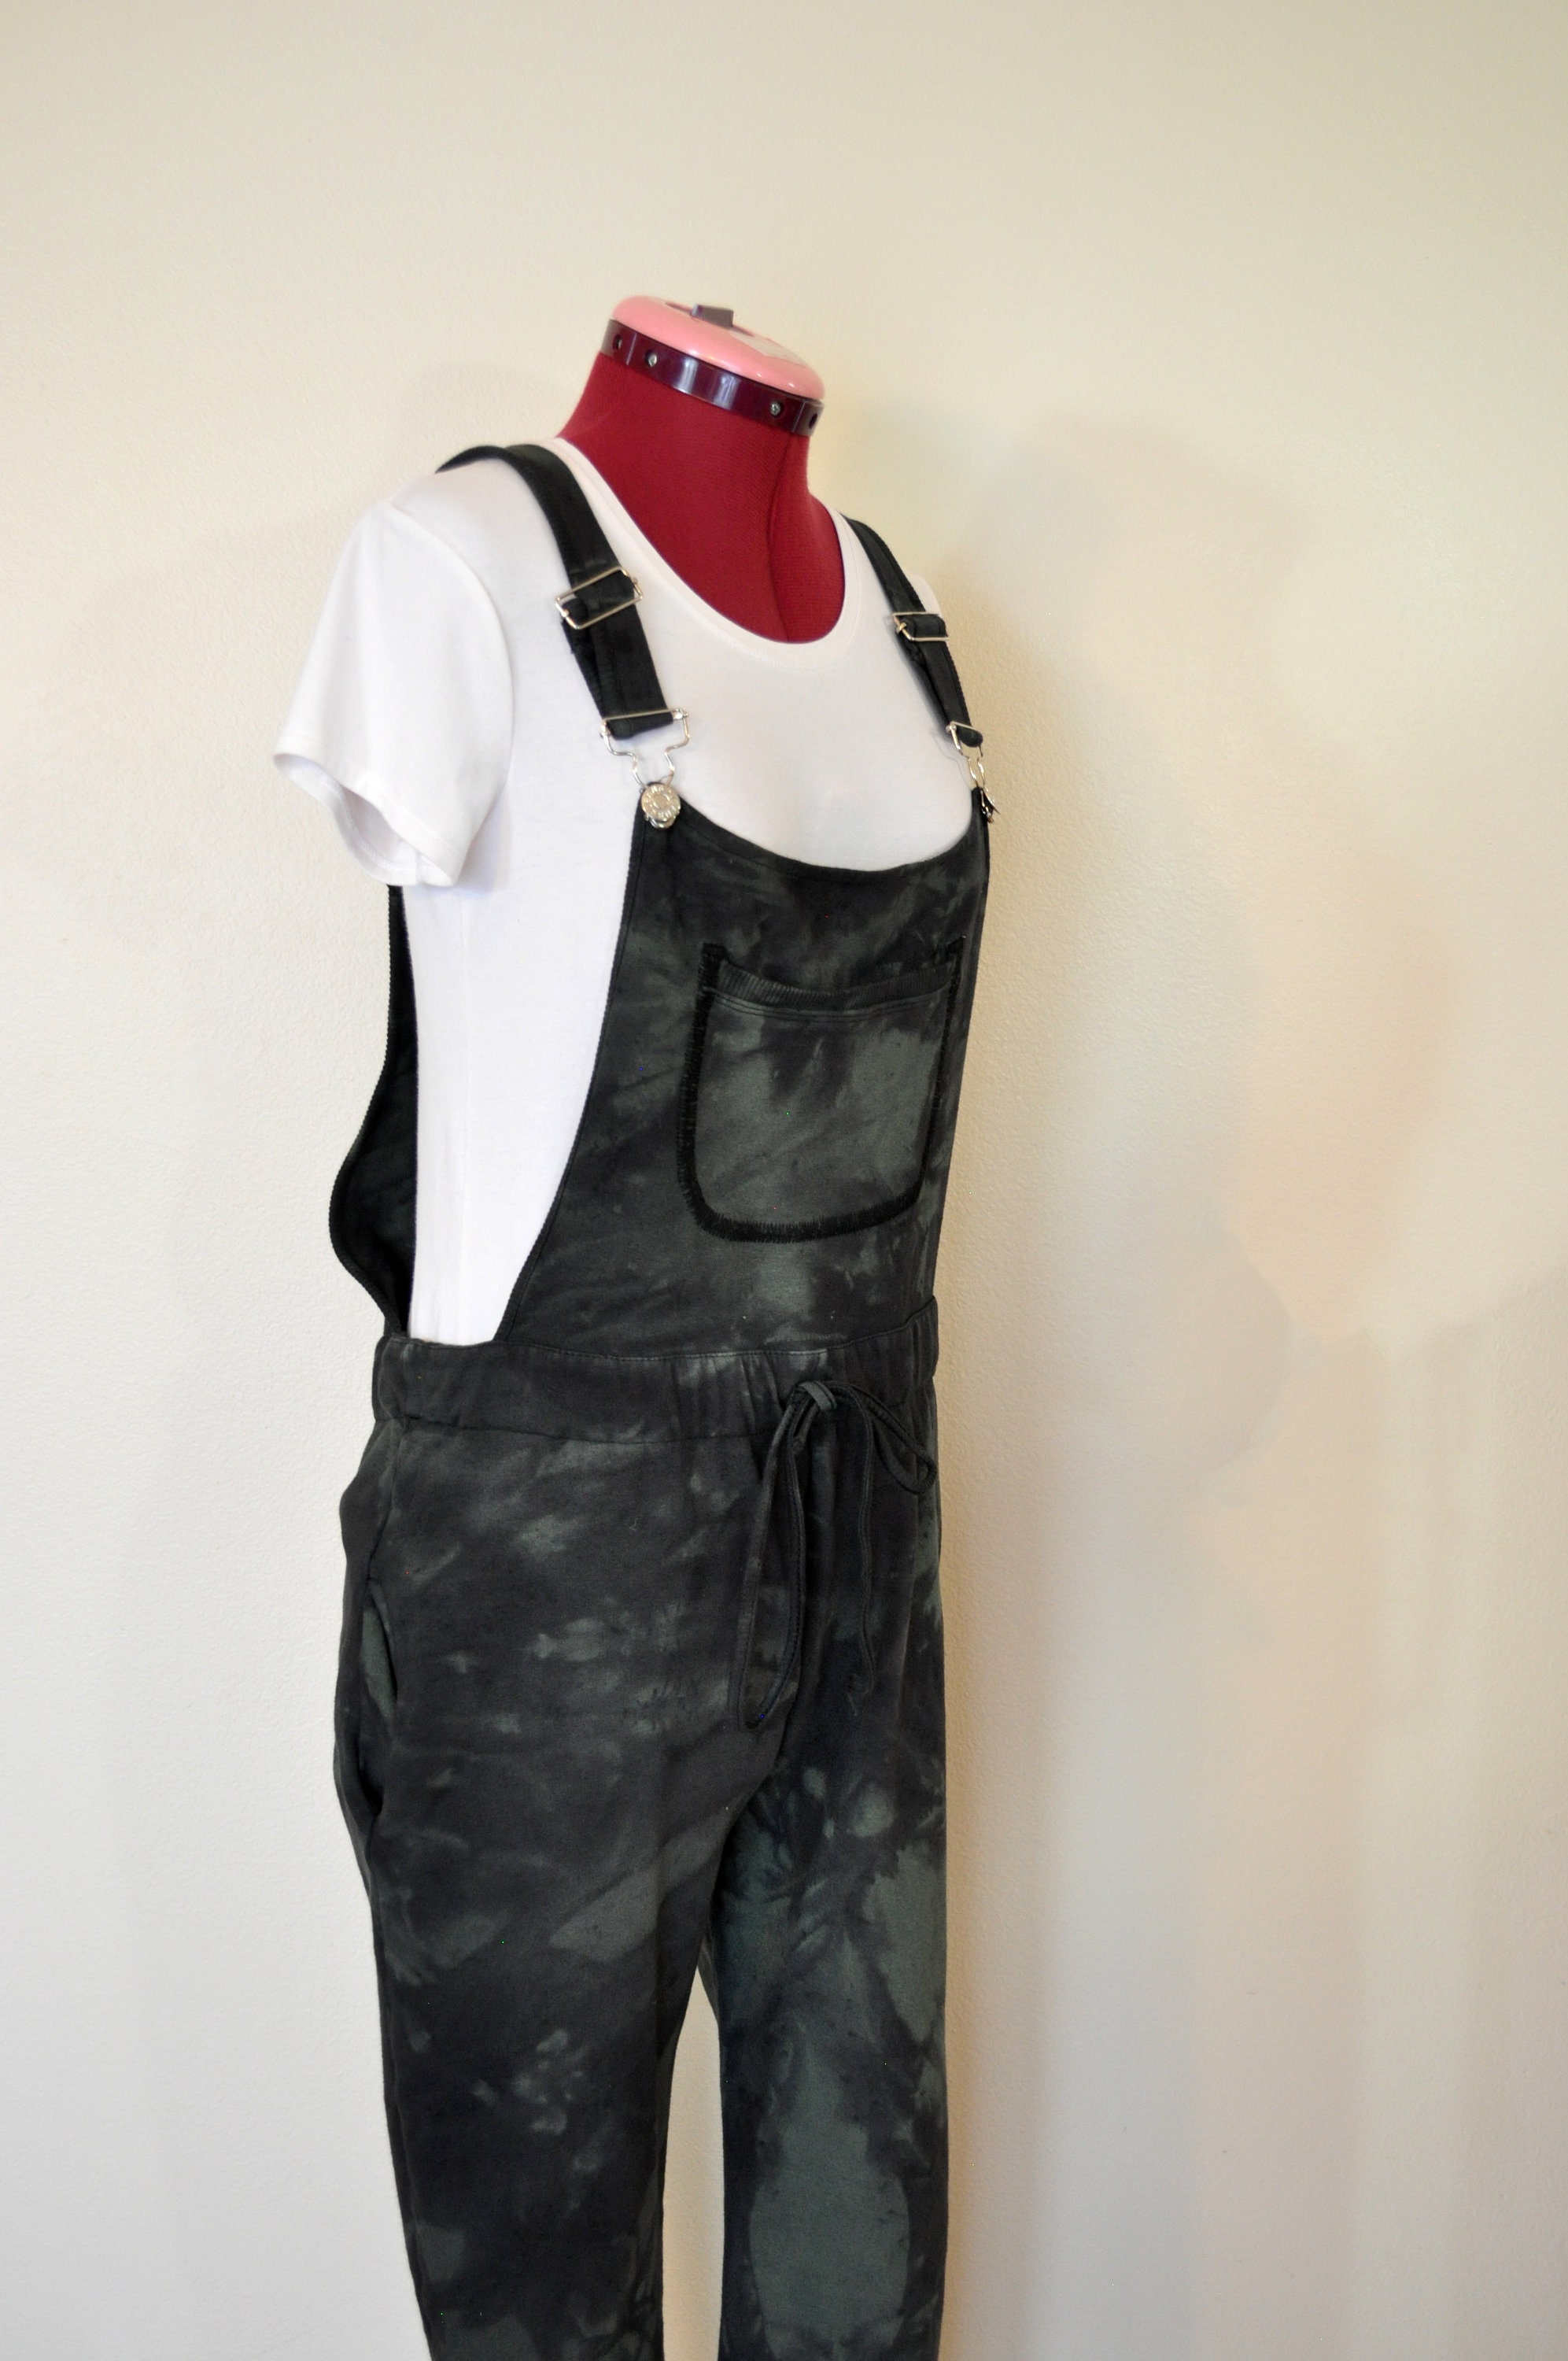 Vintage Overalls & Jumpsuits Green Jrs. Xl Bib Overall Pants - Black Dyed Upcycled Crazy Colors Cotton Denim Overall Adult Womens Size Juniors Extra Large  34W X 27L $30.00 AT vintagedancer.com